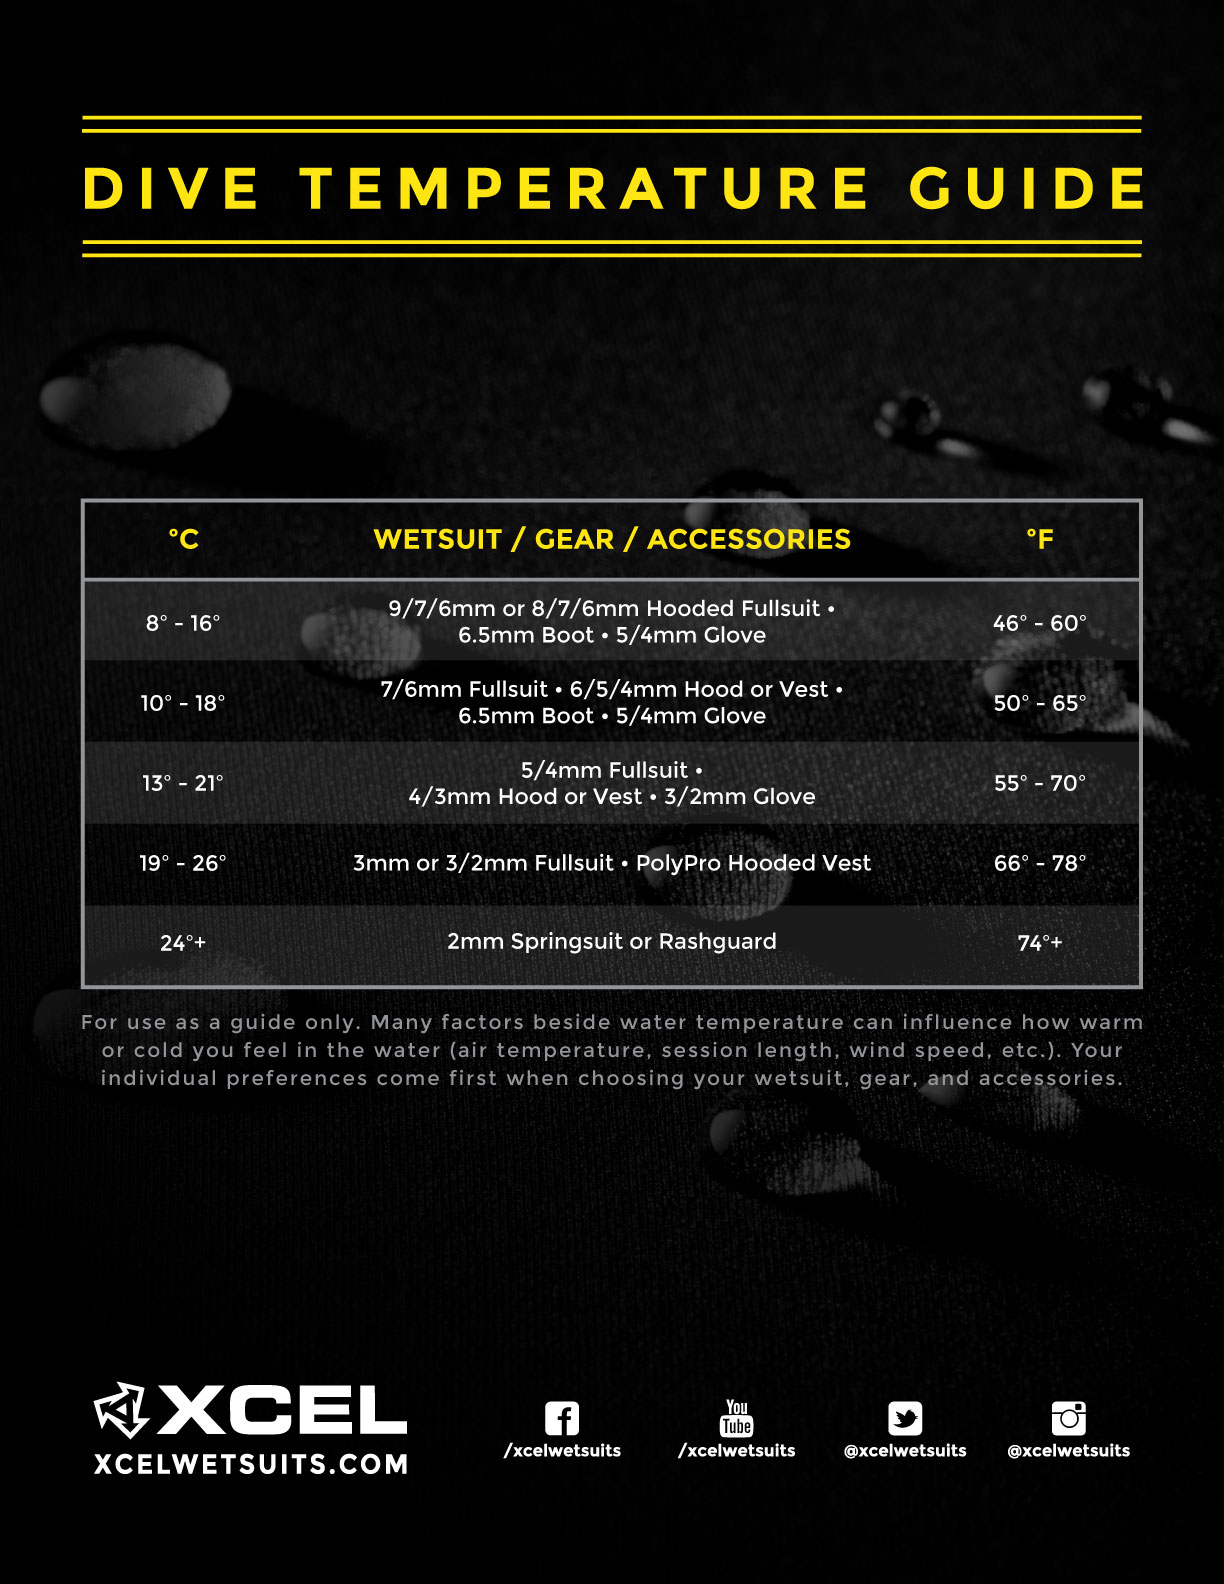 xcel_dive_temperature_guide